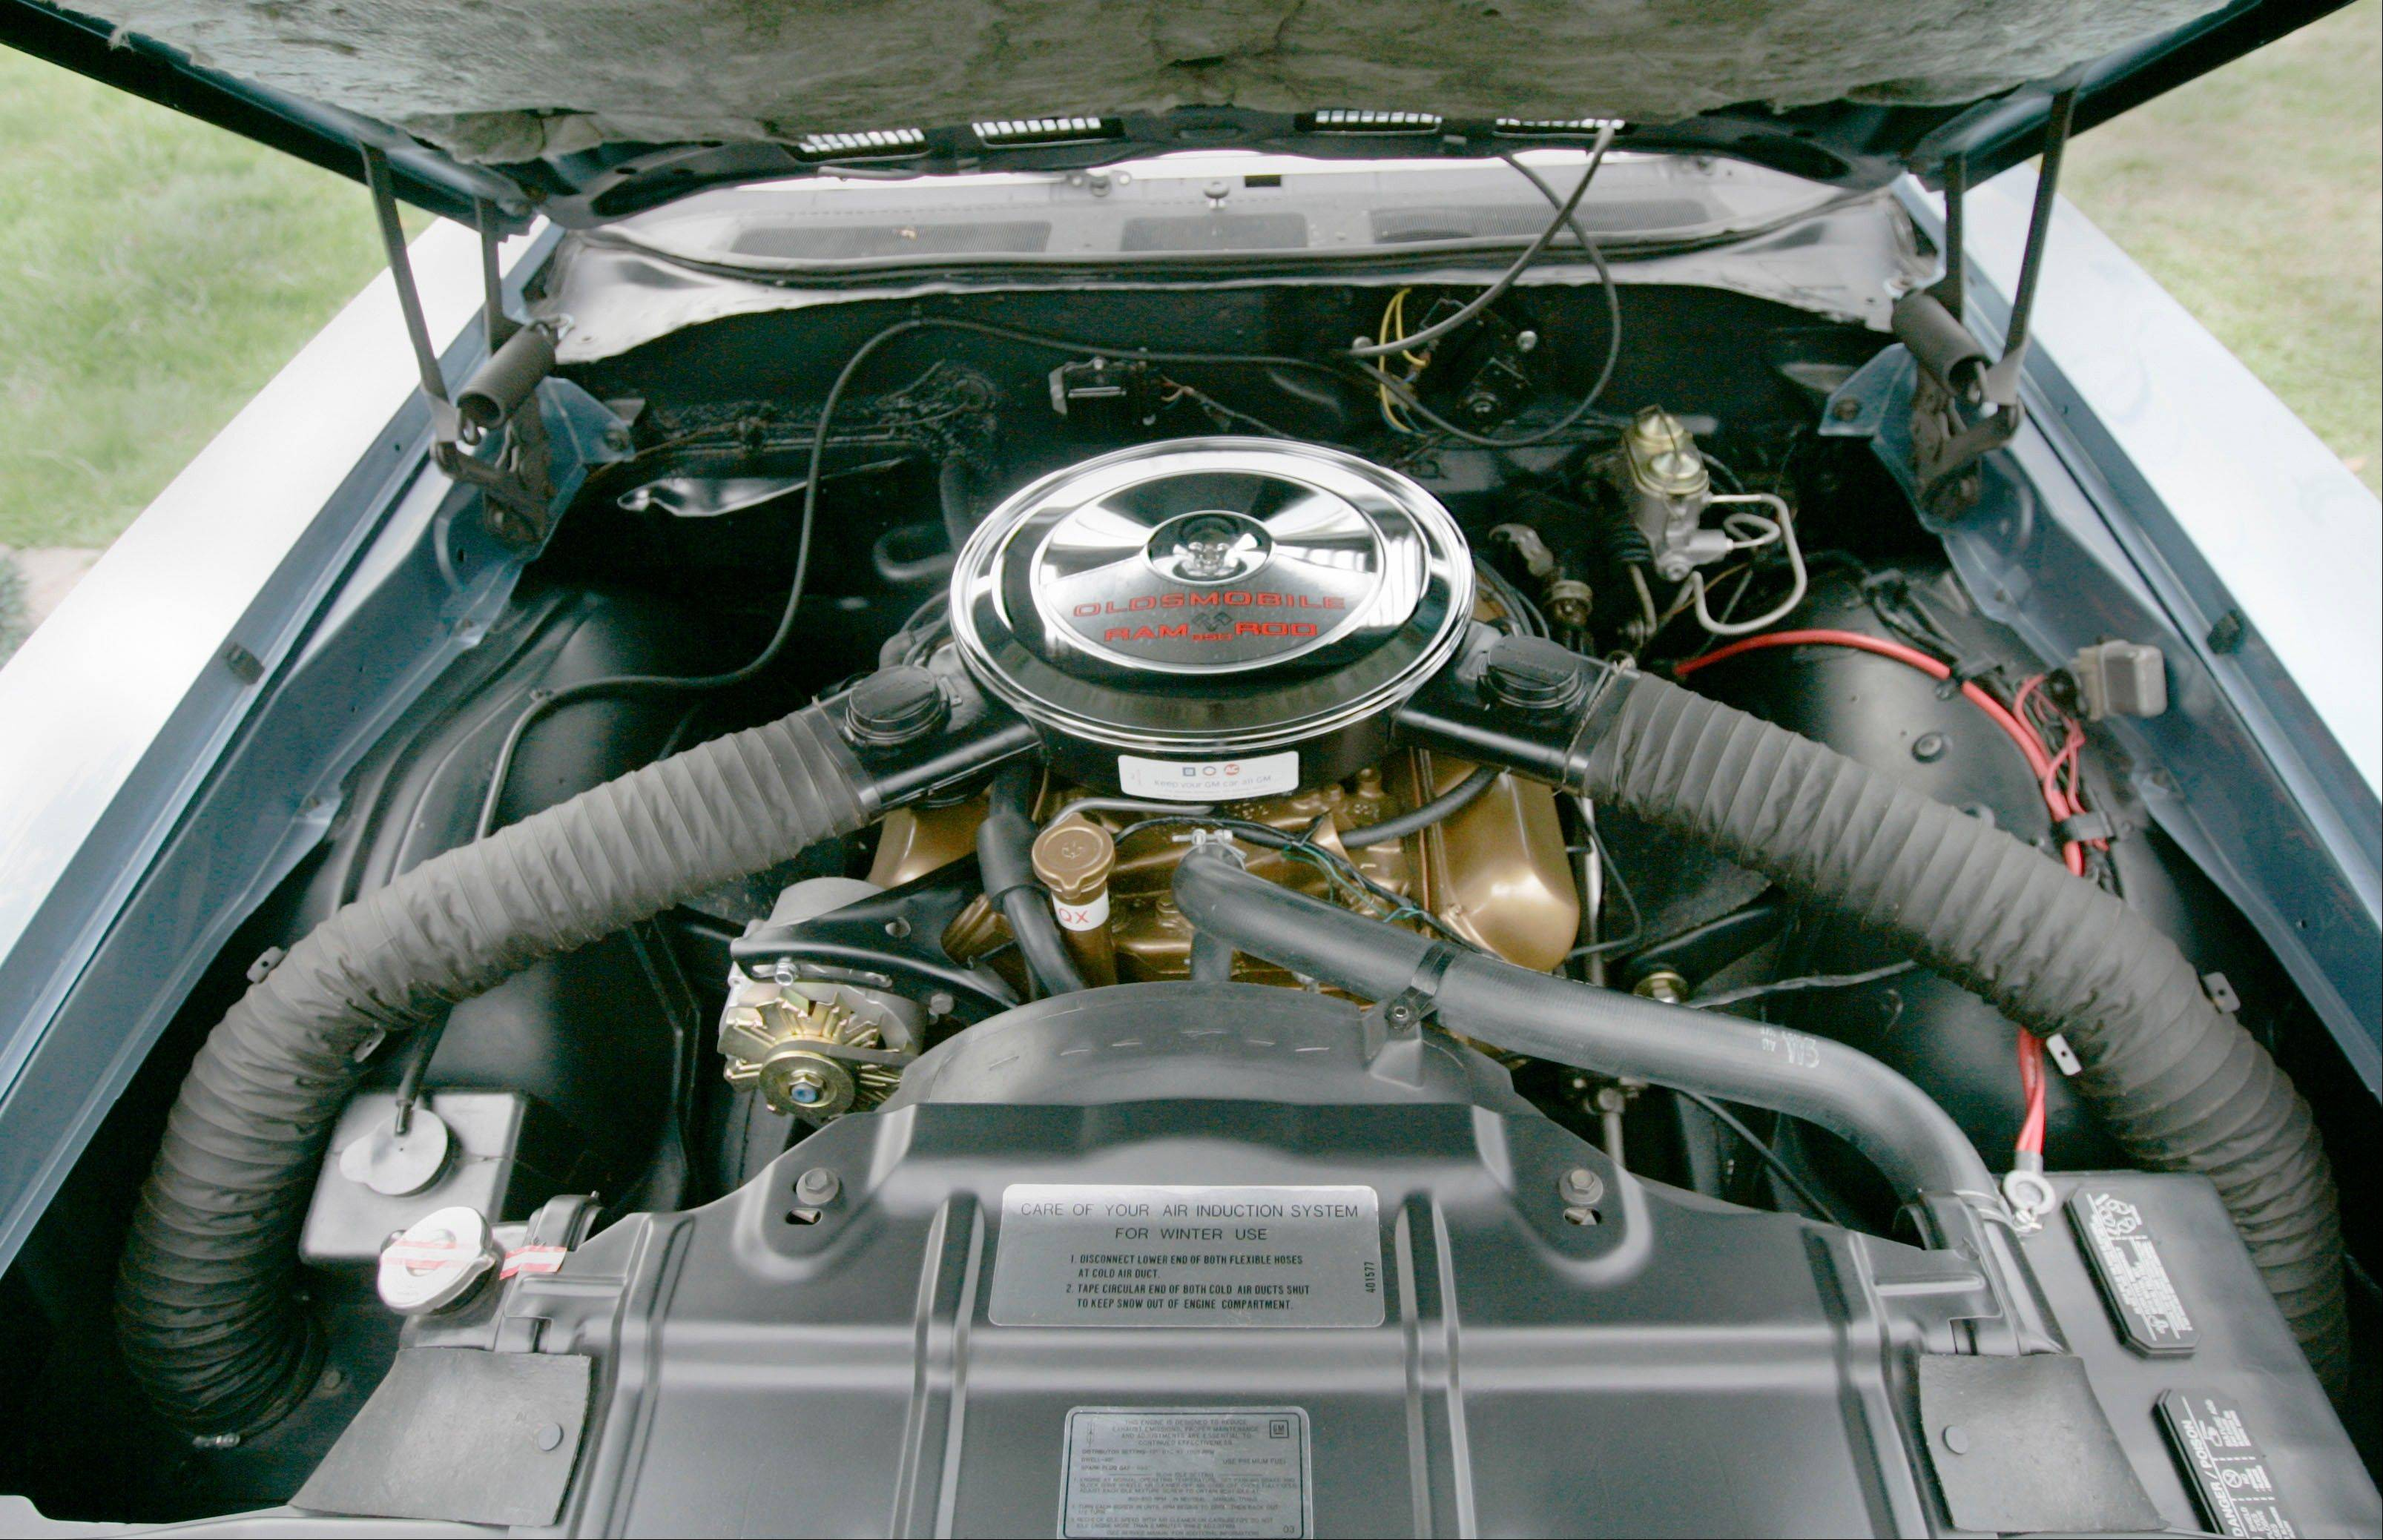 The engine compartment of Scott Pierce's 1969 Oldsmobile F-85 with the W-31 engine performance package, in Meriden, Conn. Back when gas was cheap, Americans bought cars with V-8 engines.